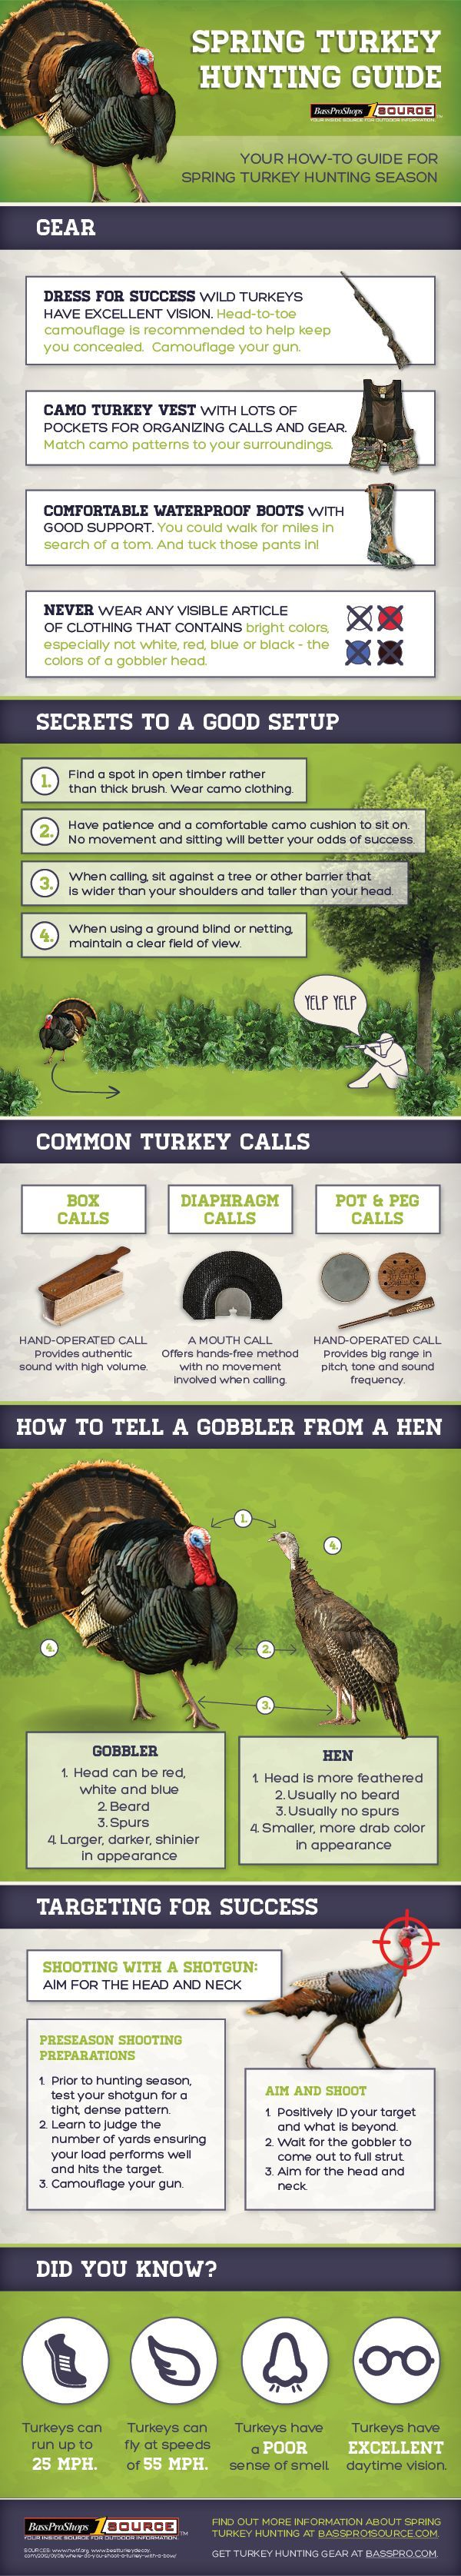 medium resolution of a how to guide to spring turkey hunting infographic